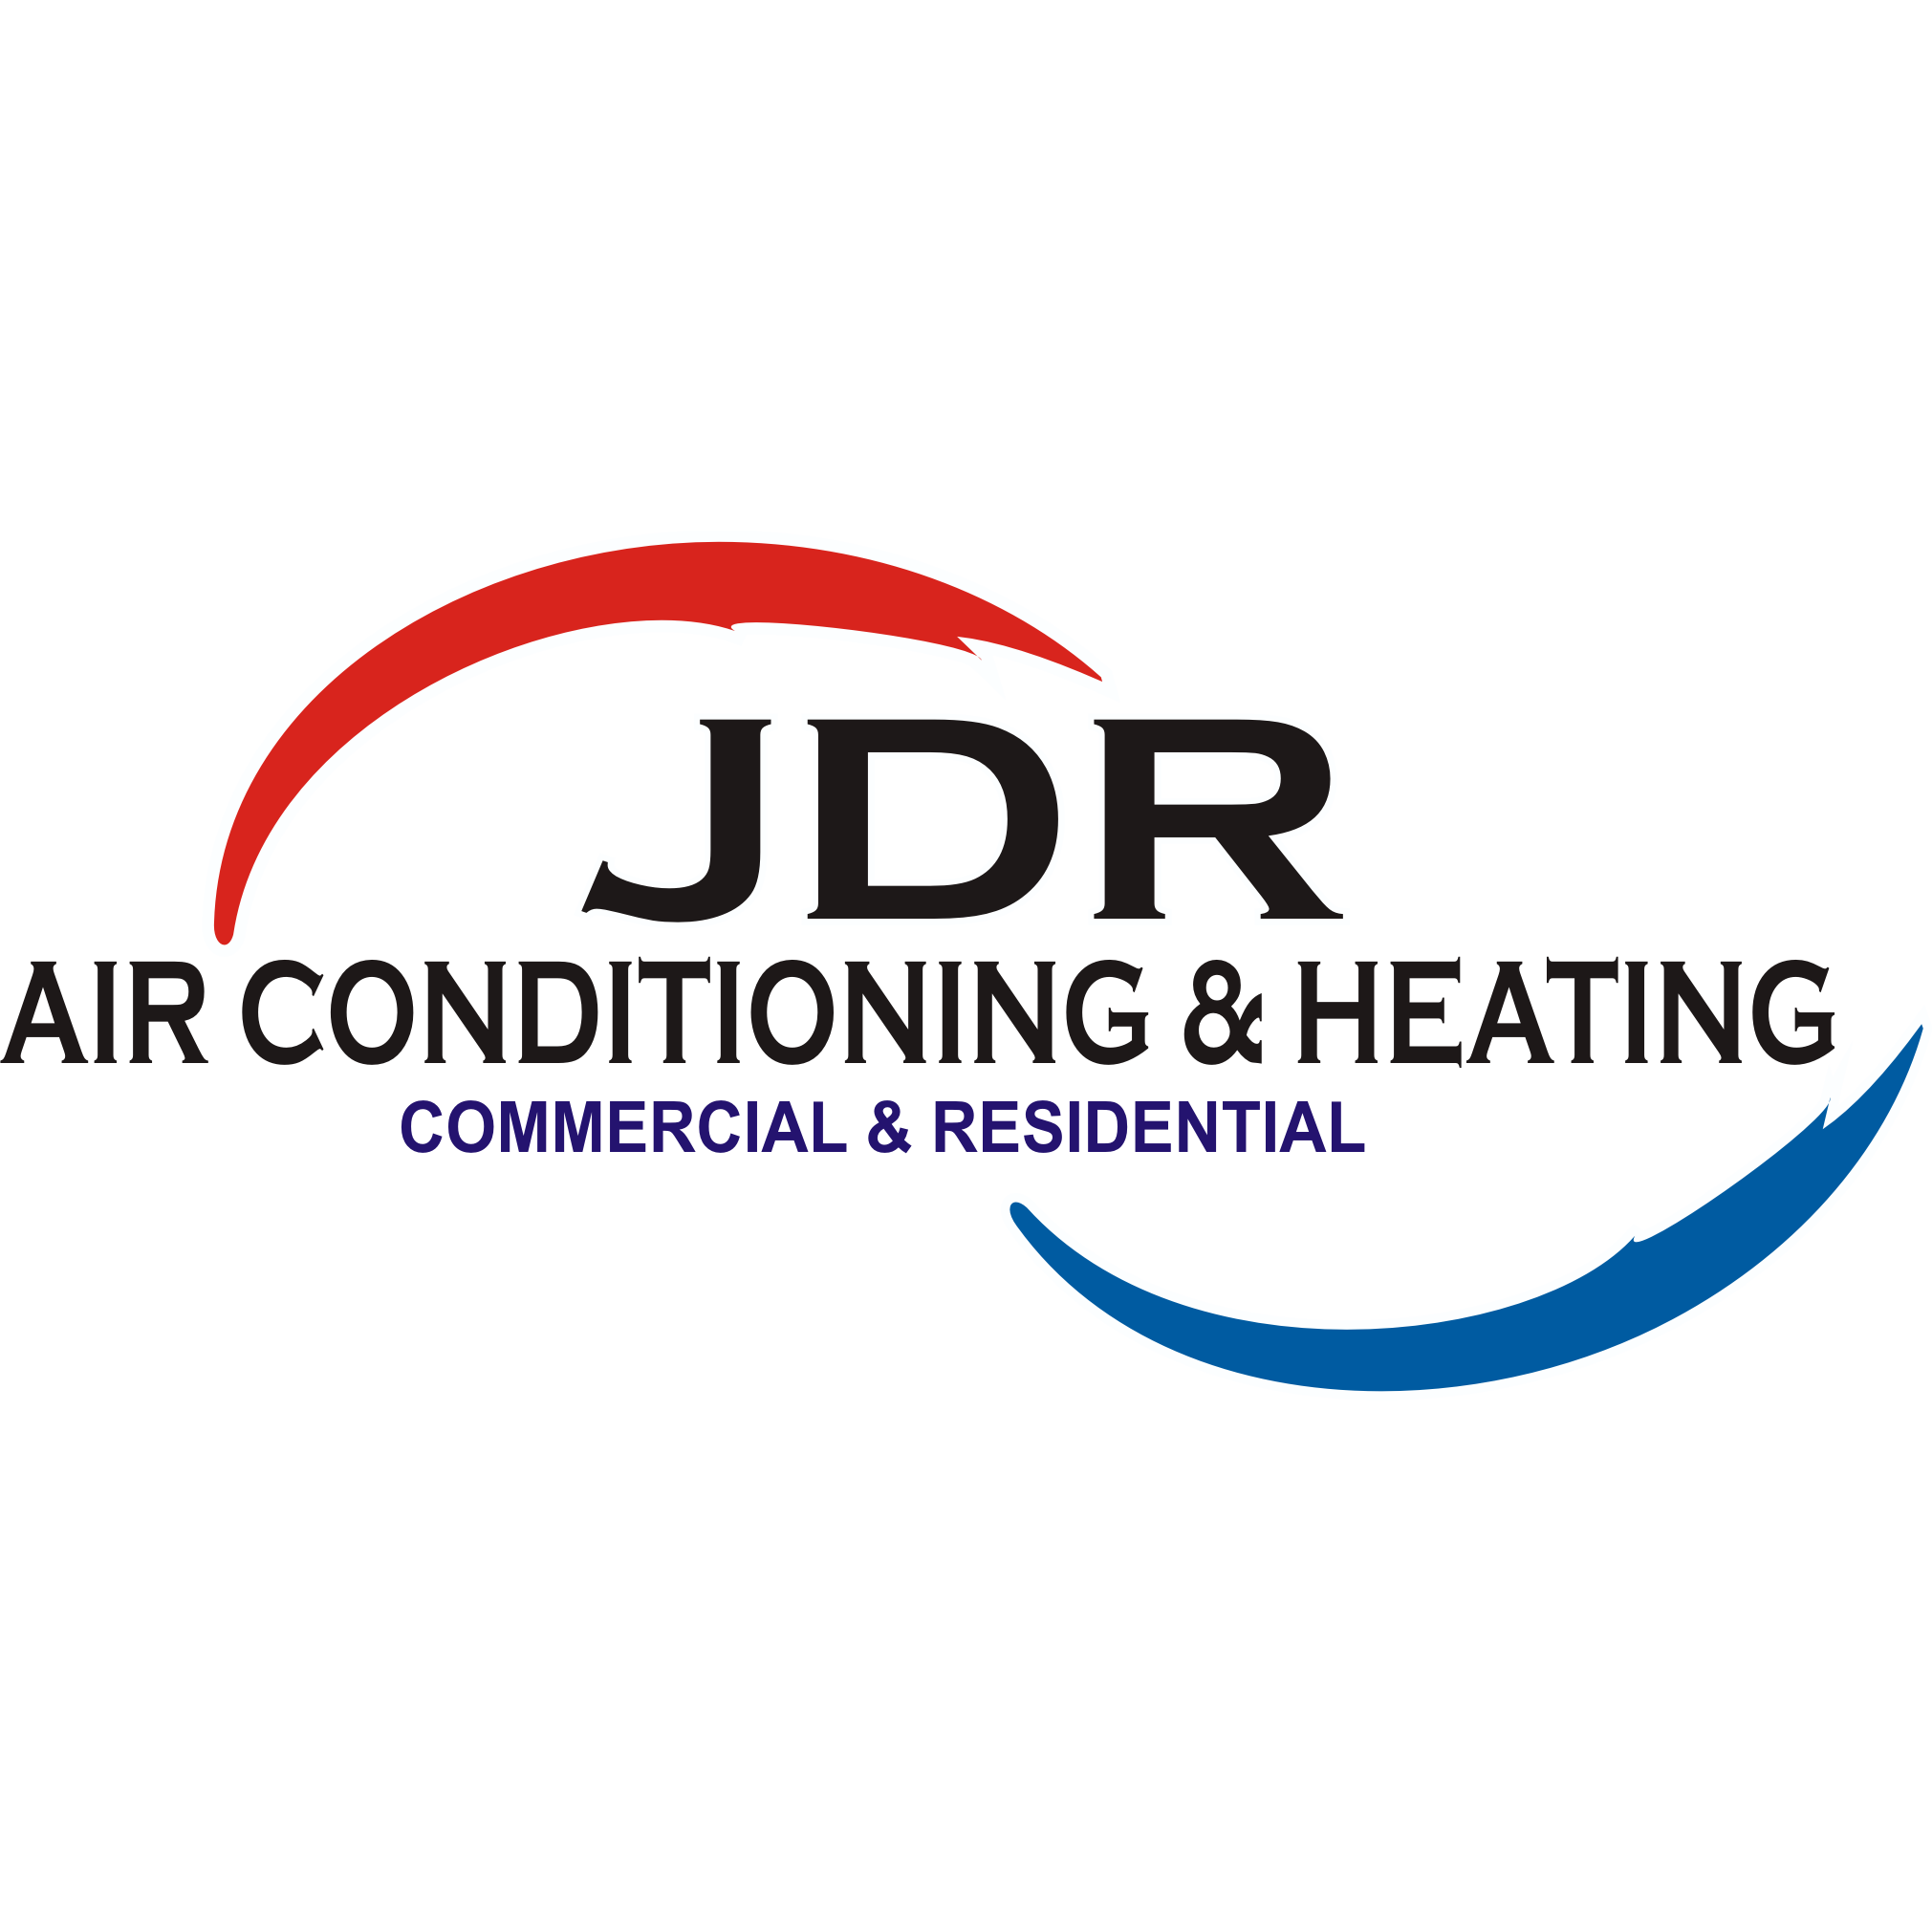 Jdr A.C. & Heating